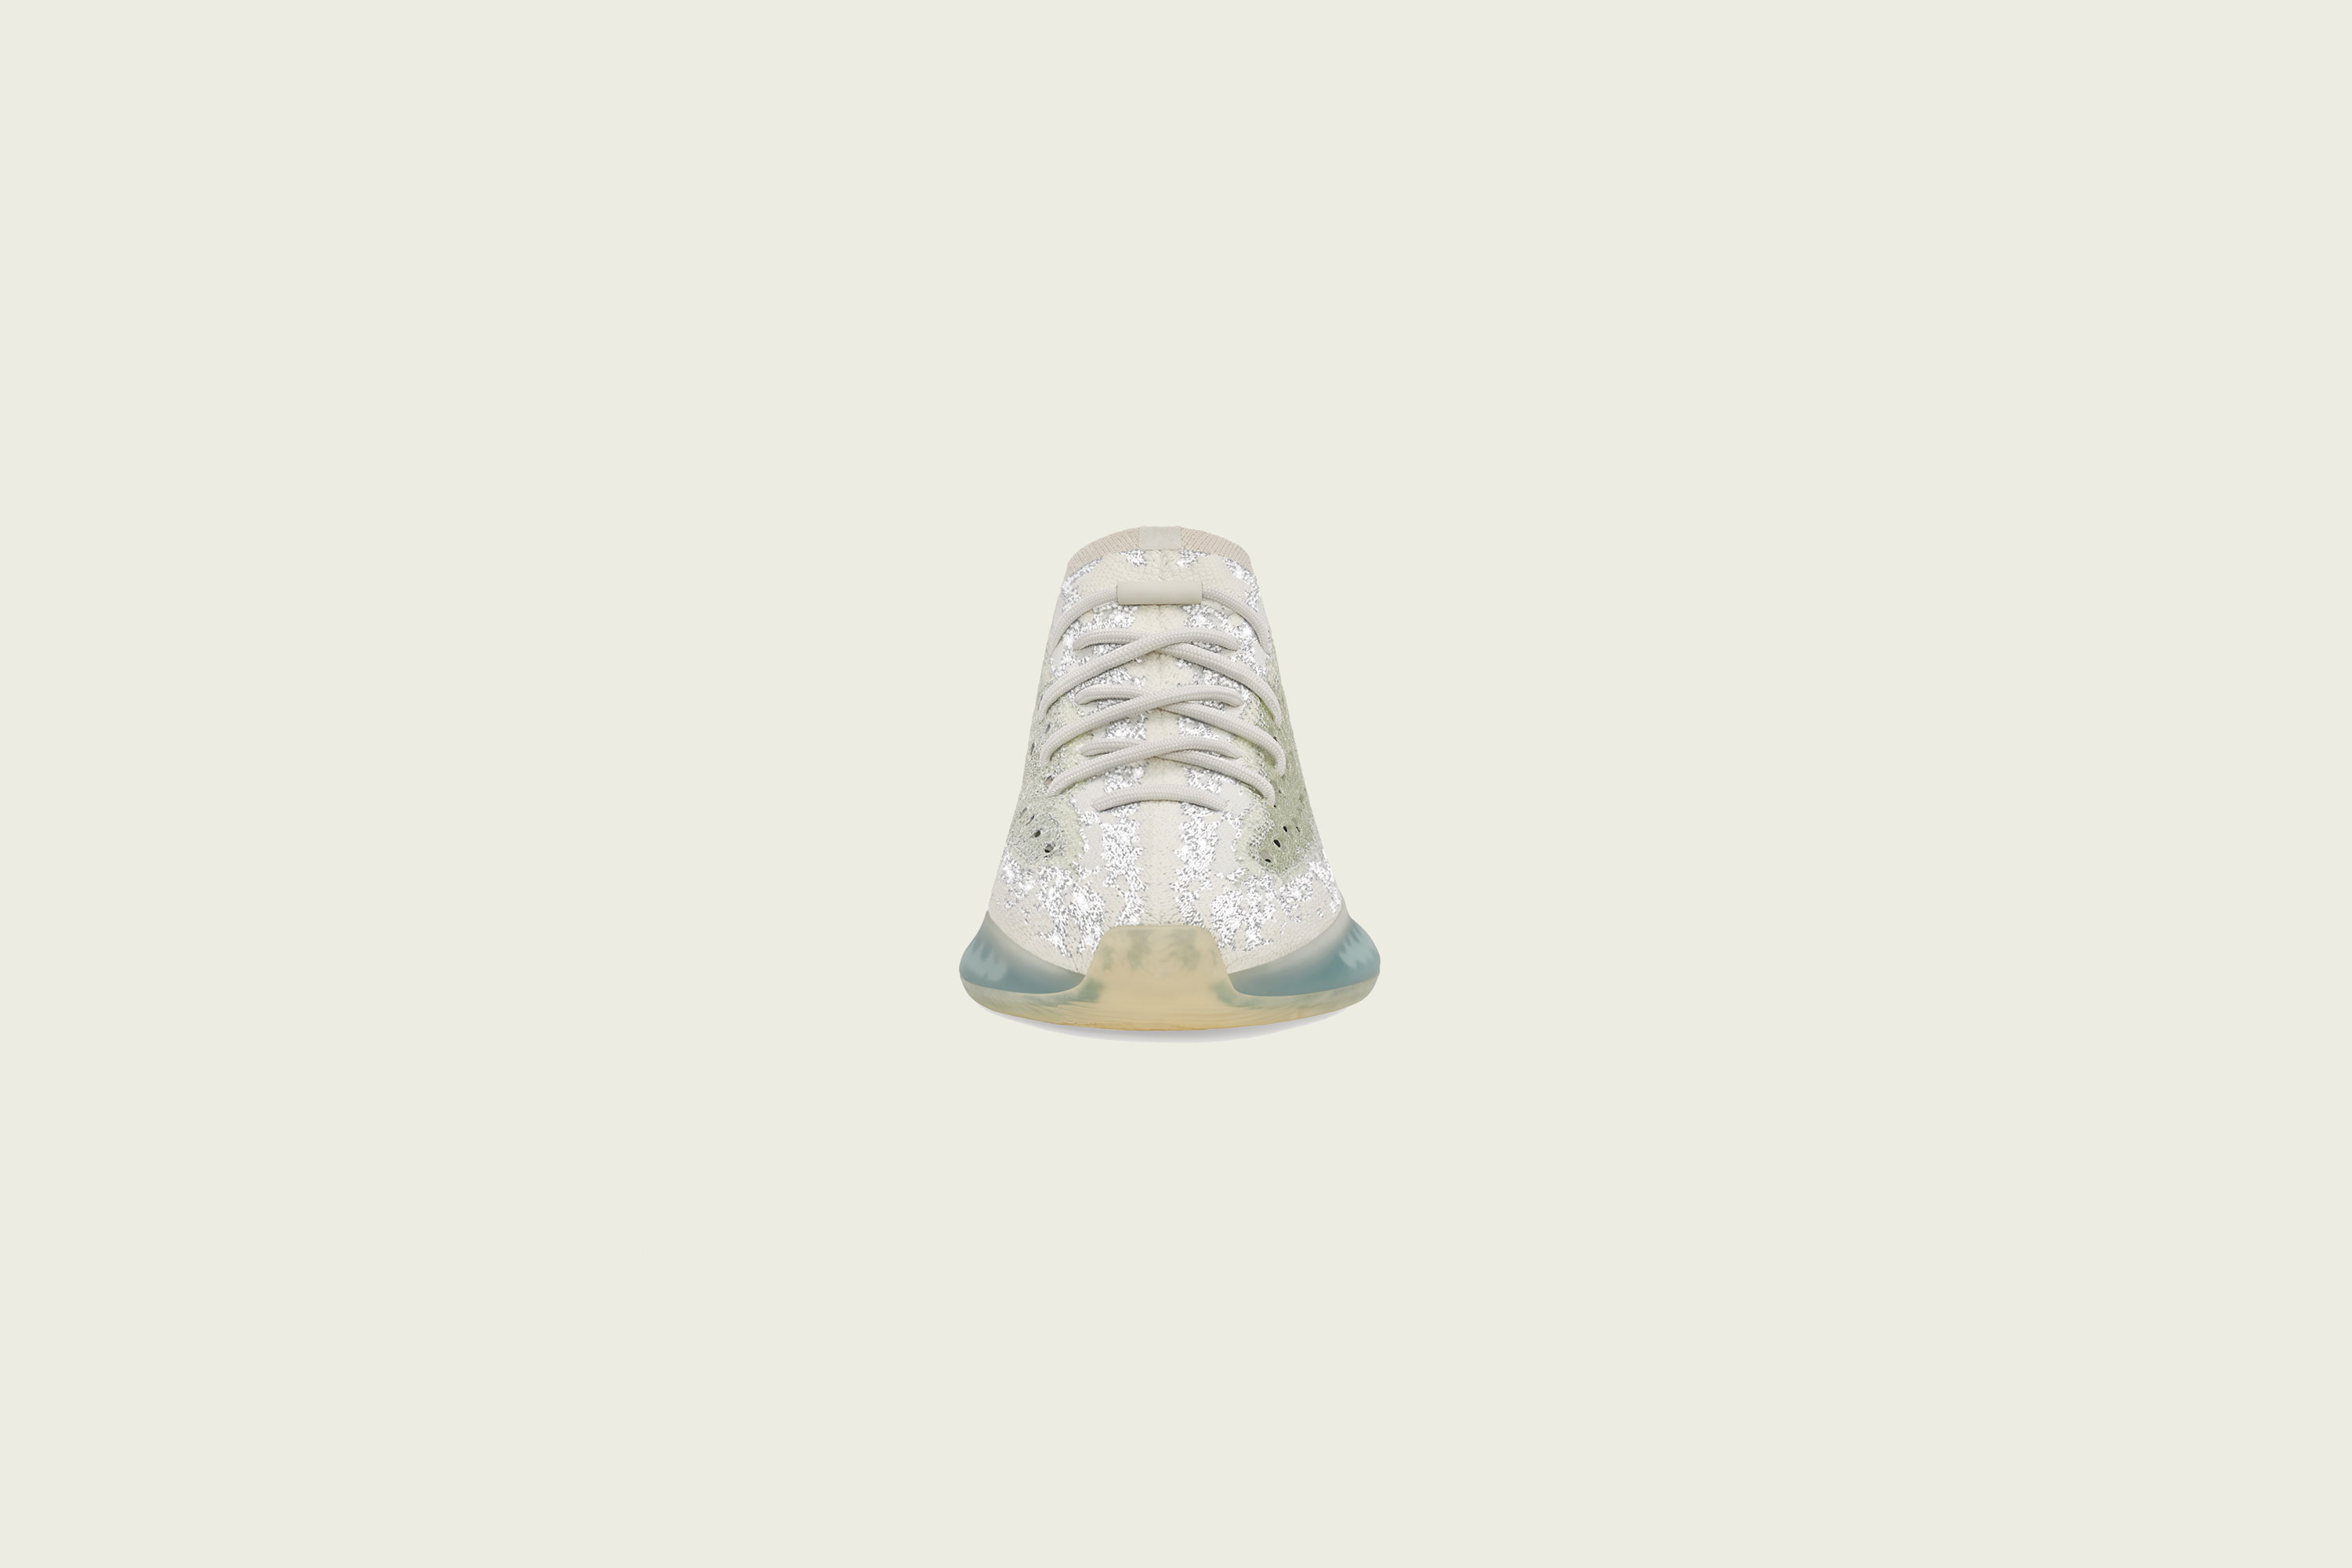 Up There Store - adidas Originals Yeezy Boost 380 'Alien Blue' RF